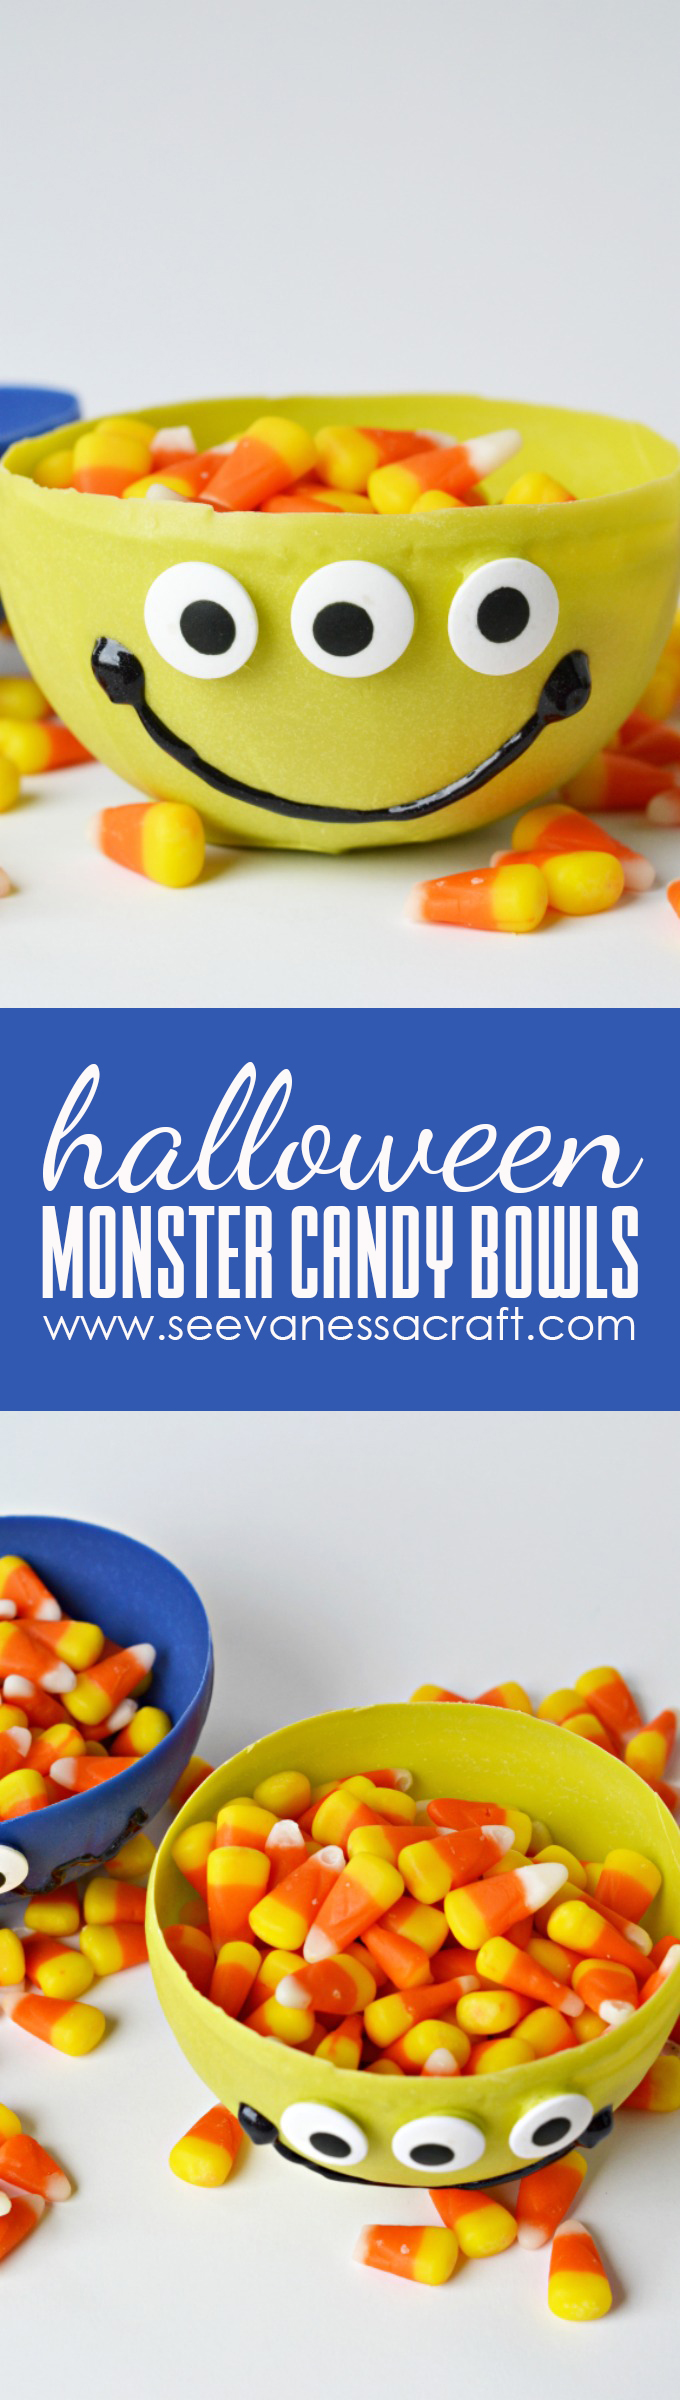 Chocolate Monster Candy Bowls Tutorial for Halloween